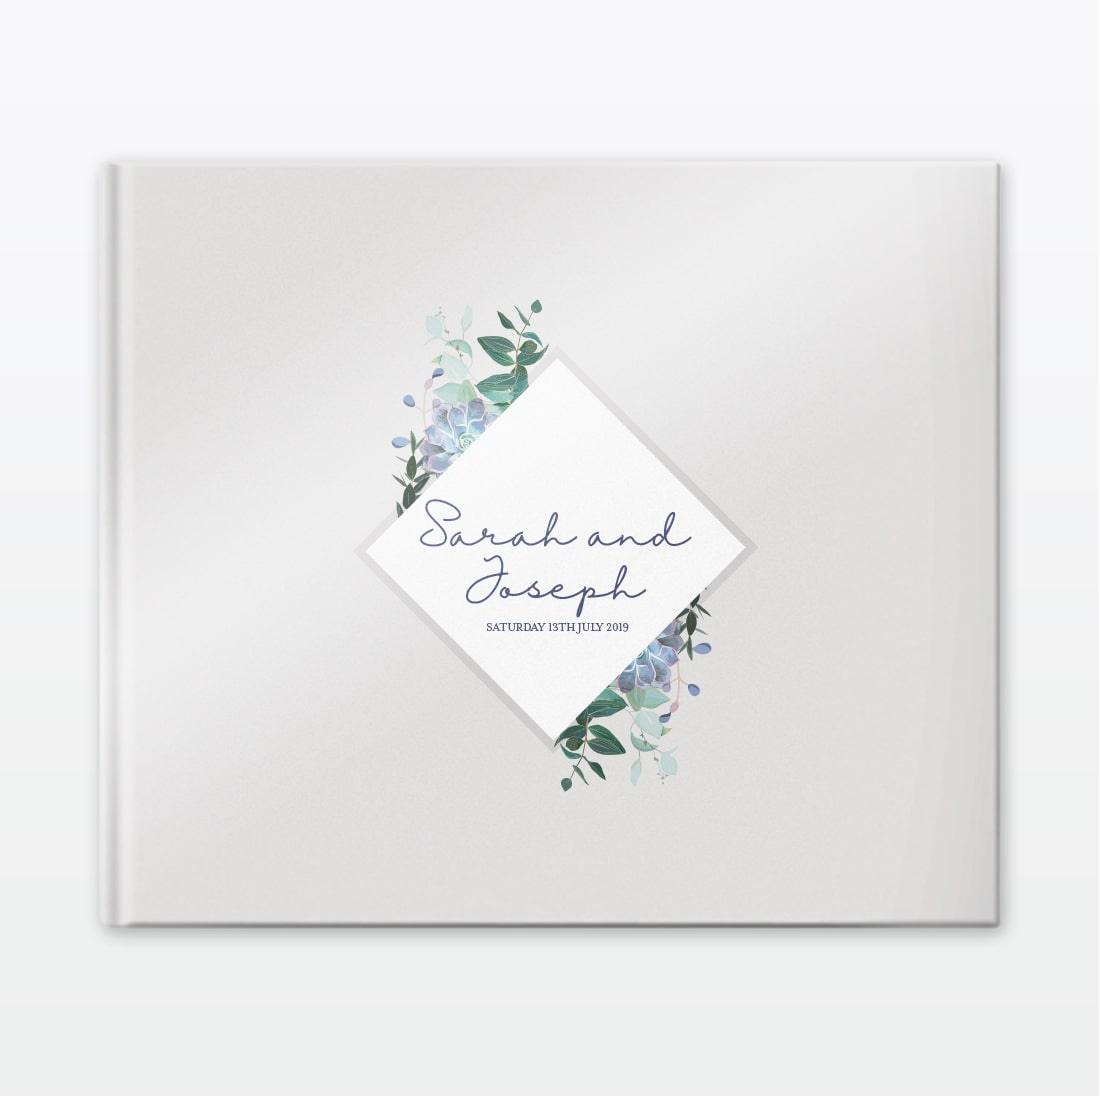 Botanical Wedding Photo Book